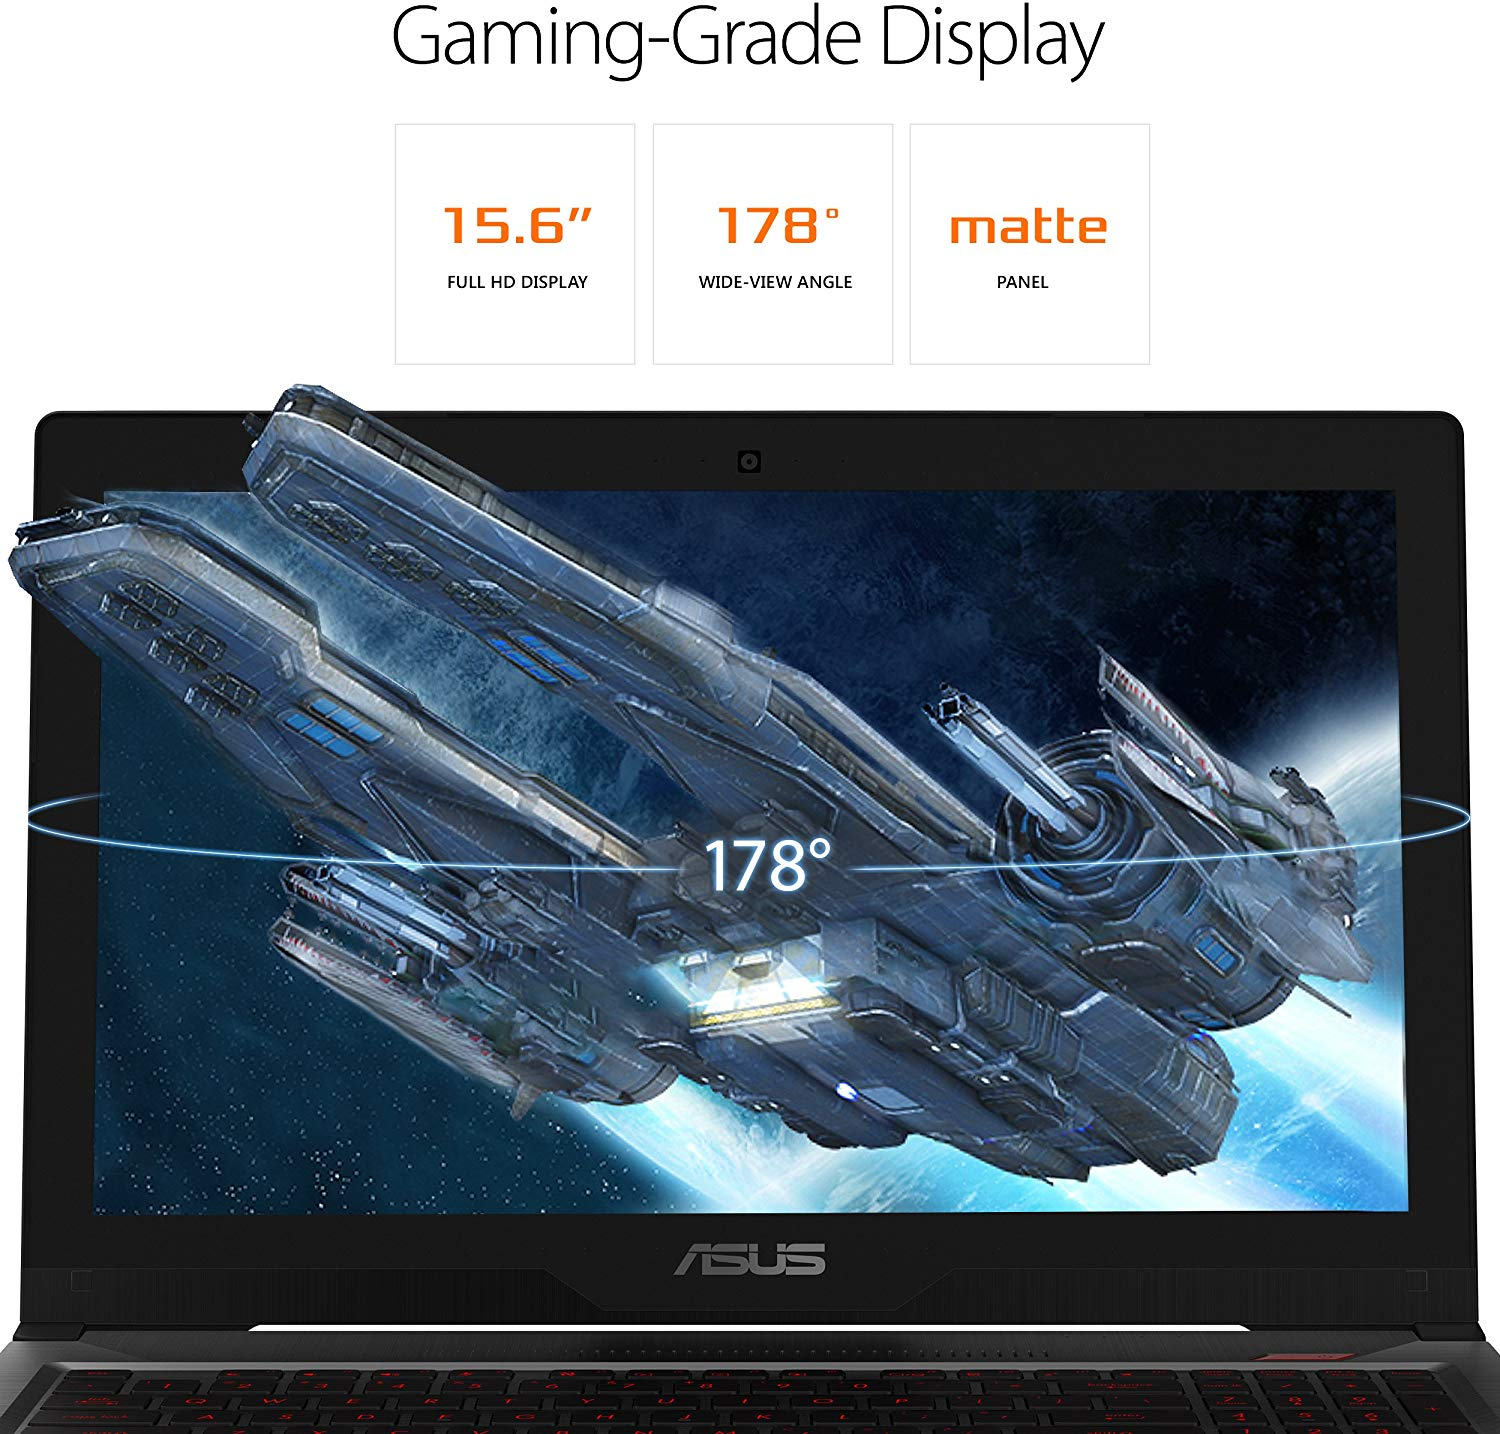 "ASUS FX503VM 15.6"" Full HD Powerful Gaming Laptop, Intel Core i7-7700HQ Quad-Core 2.8GHz Processor, GTX 1060, 128GB M.2 SSD + 1TB HDD, 16GB DDR4 RAM, Windows 10 Home"